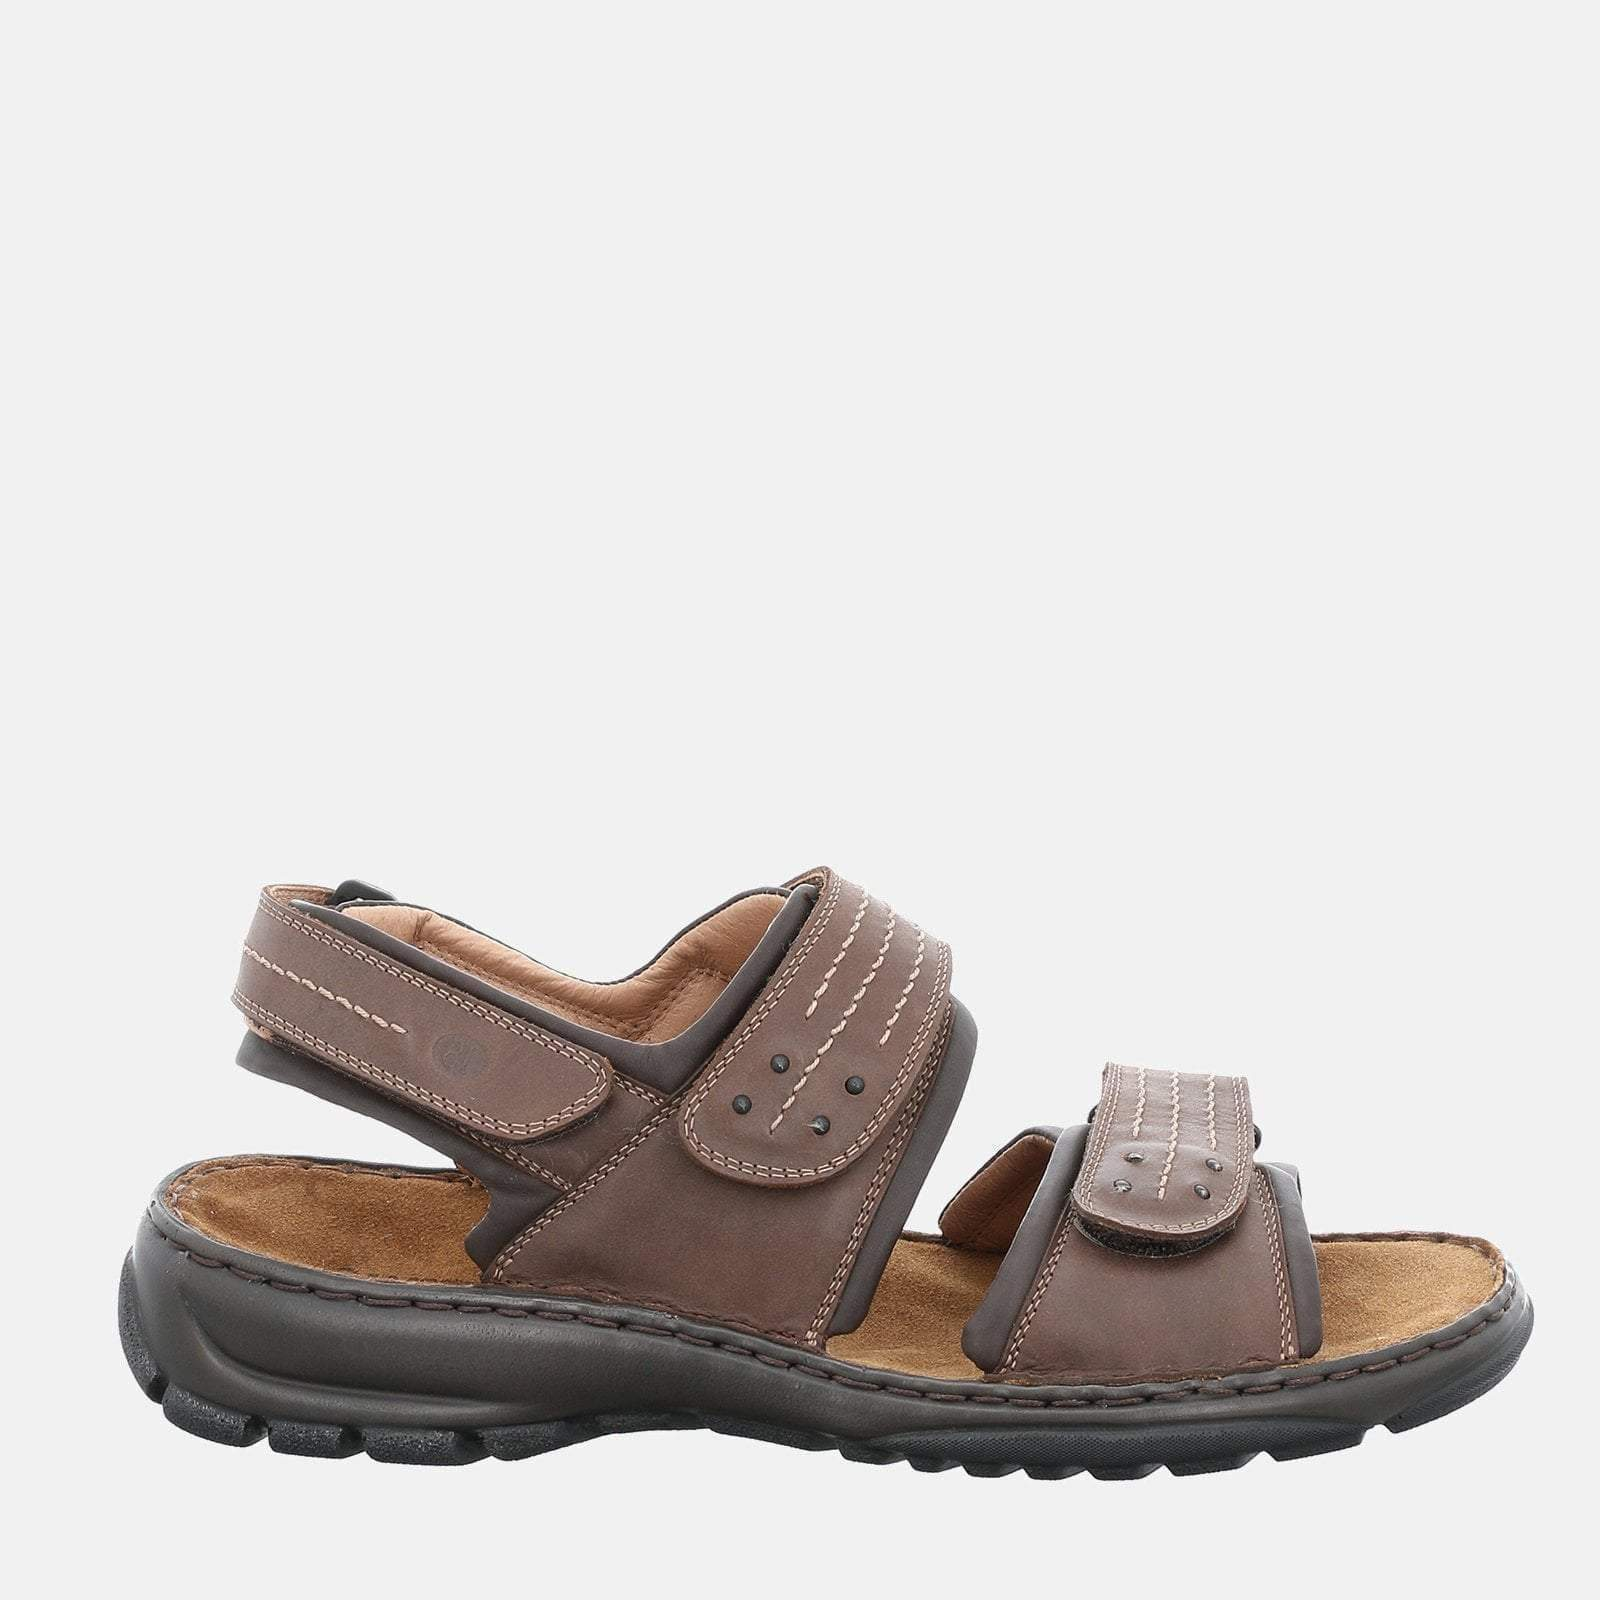 Josef Seibel Footwear Firenze 01 Moro - Josef Seibel Brown Tan Leather Walking Sandals